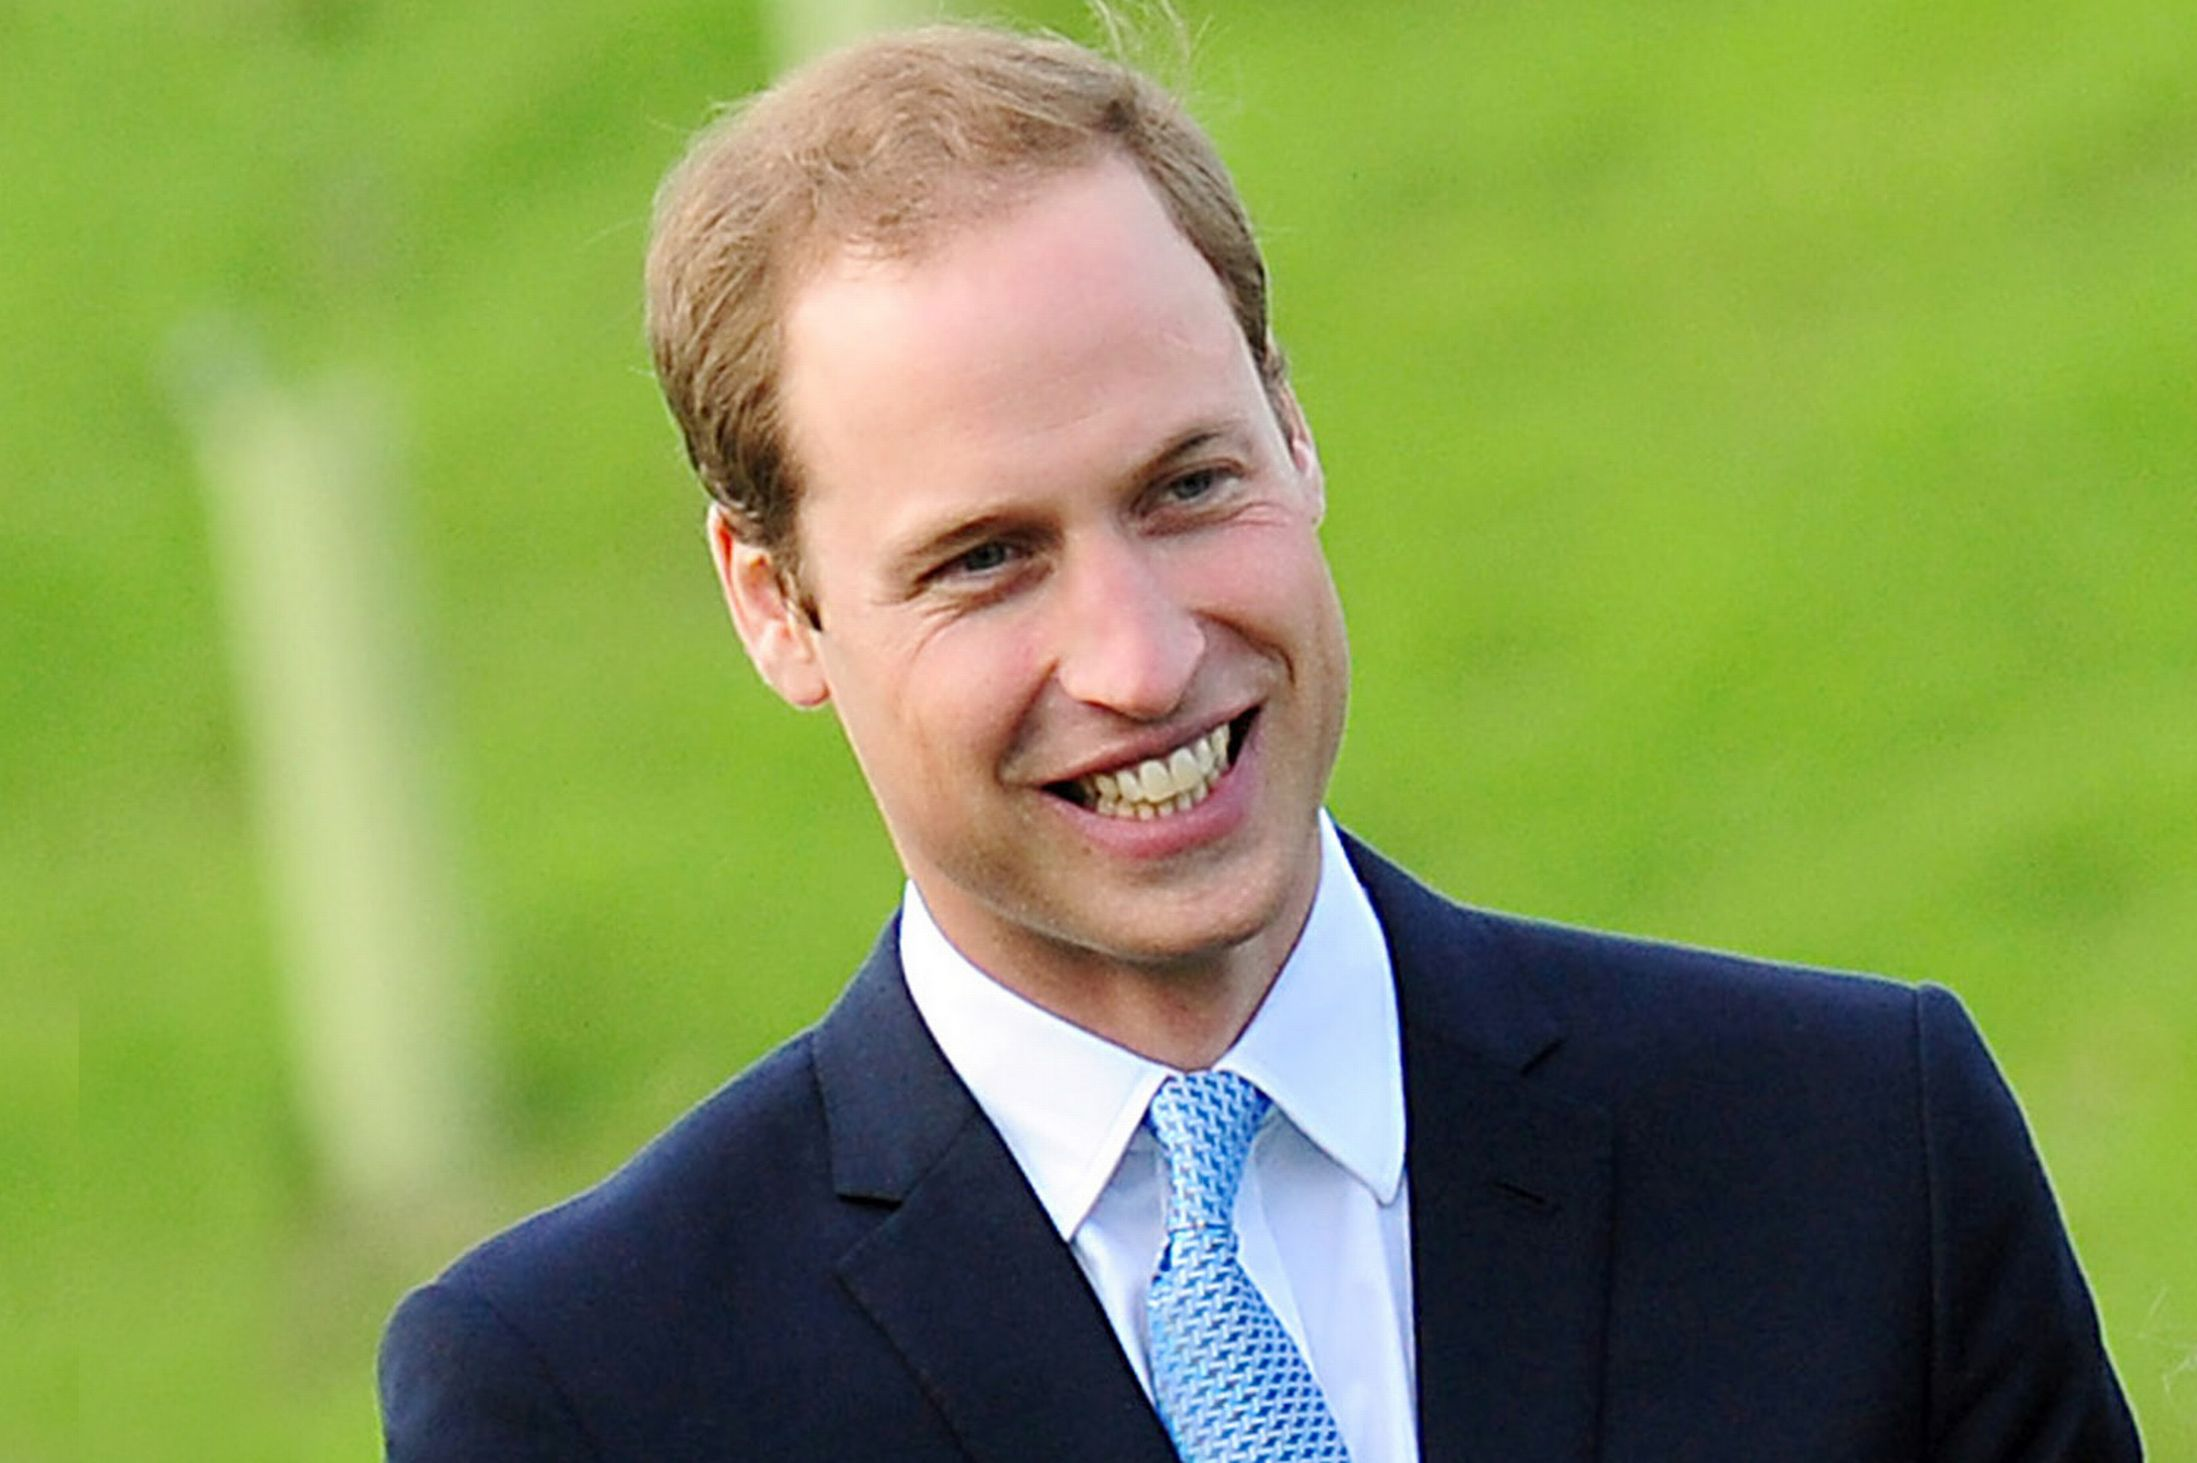 Prince William Most Handsome Man 2016